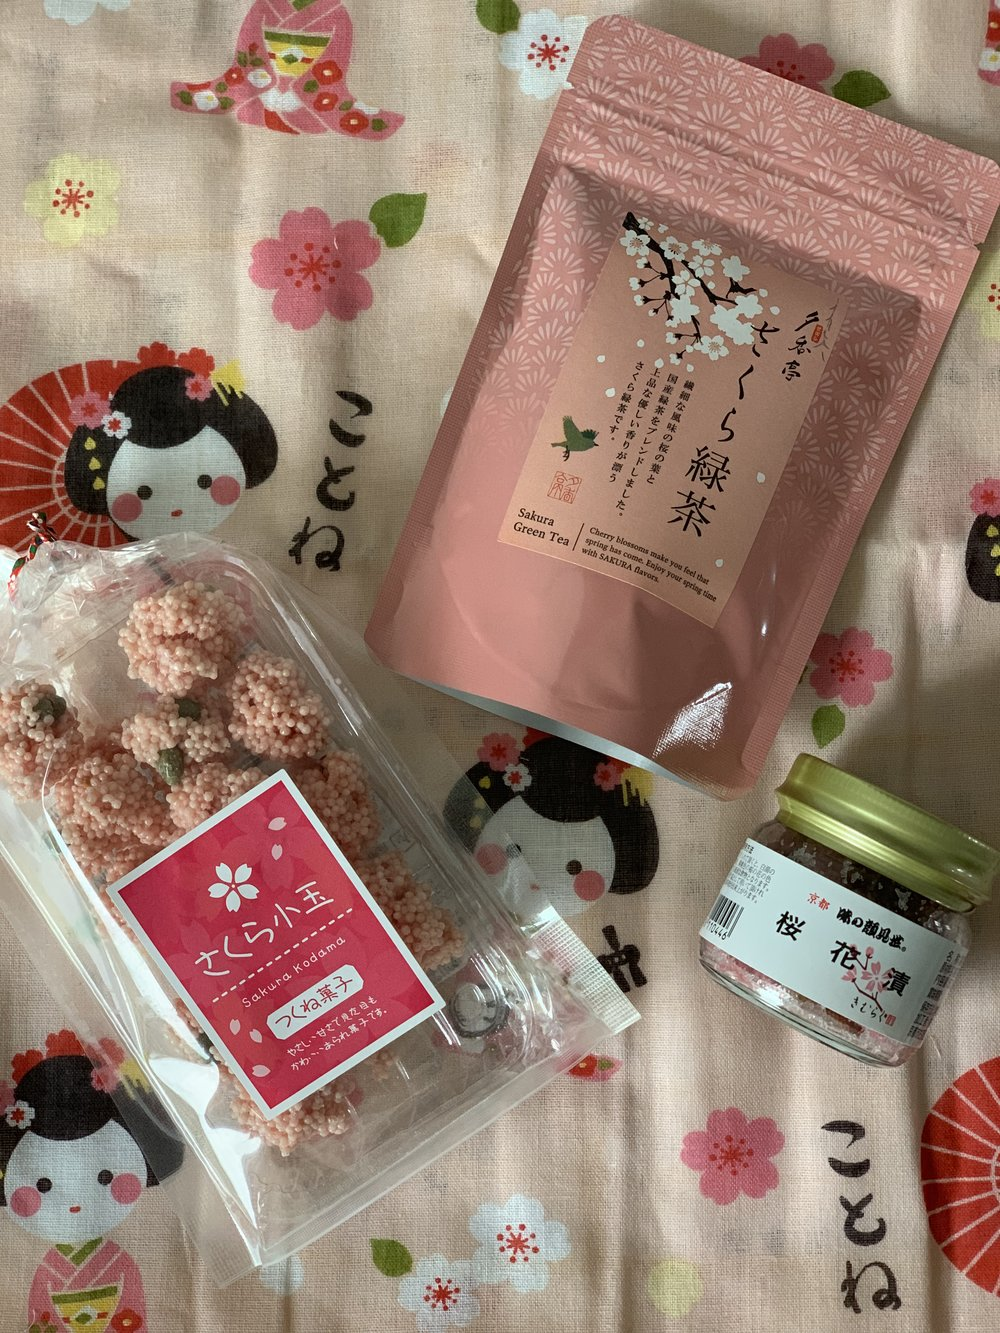 Sakura (cherry blossom) flavored treats (kind of like rice crispy treats,) loose leaf green tea, & sweet blossom flakes.